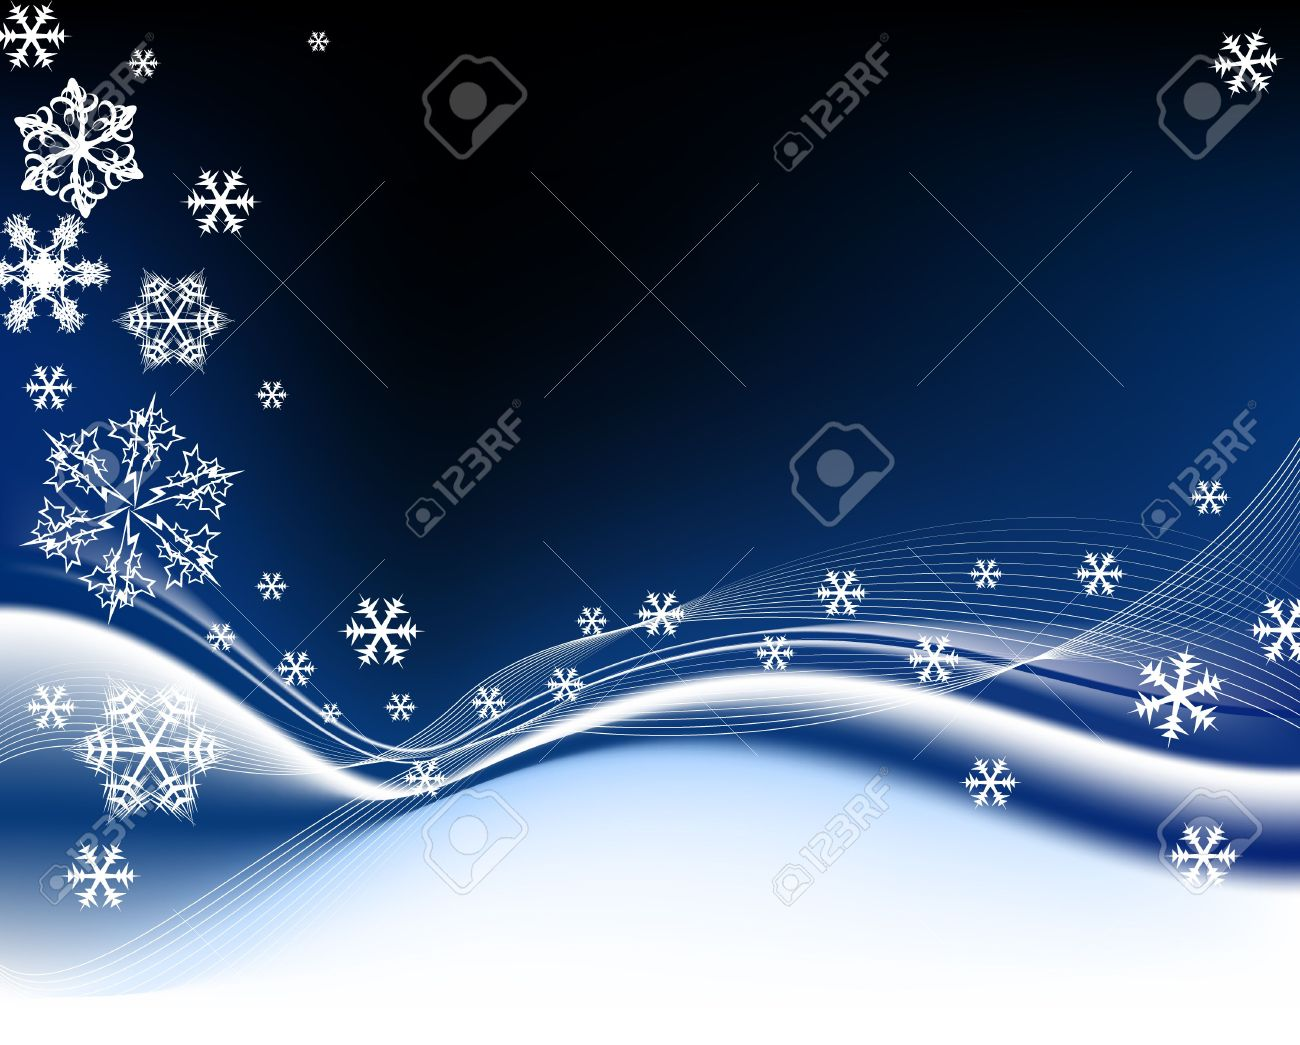 Dark Blue Christmas Background With White Snowflakes Stock Photo ...